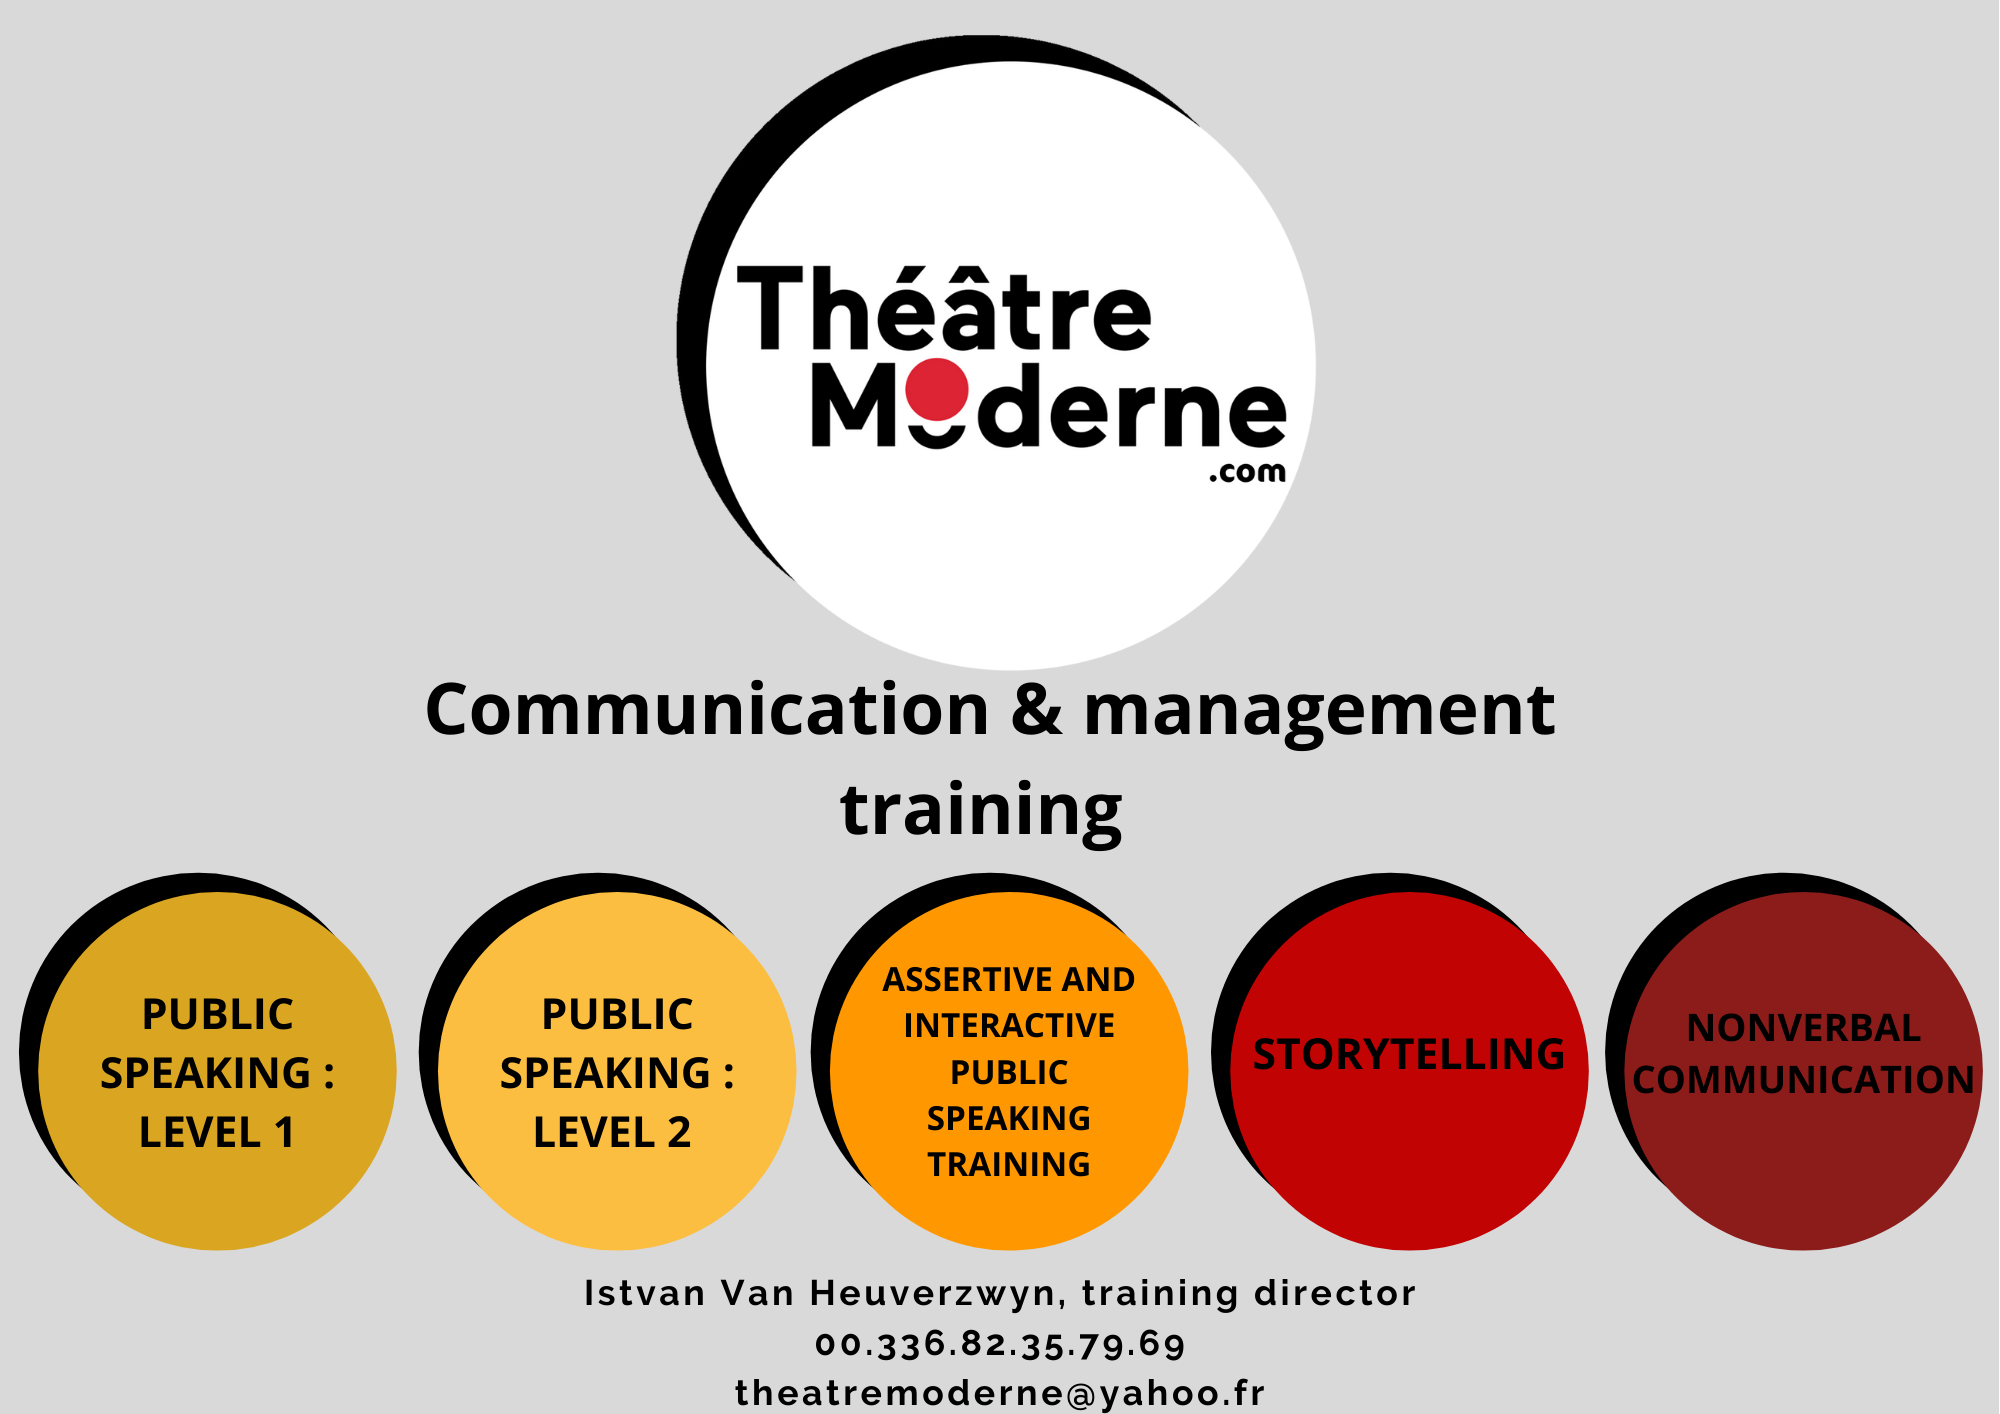 4 _ Registration, quote, communication and management training